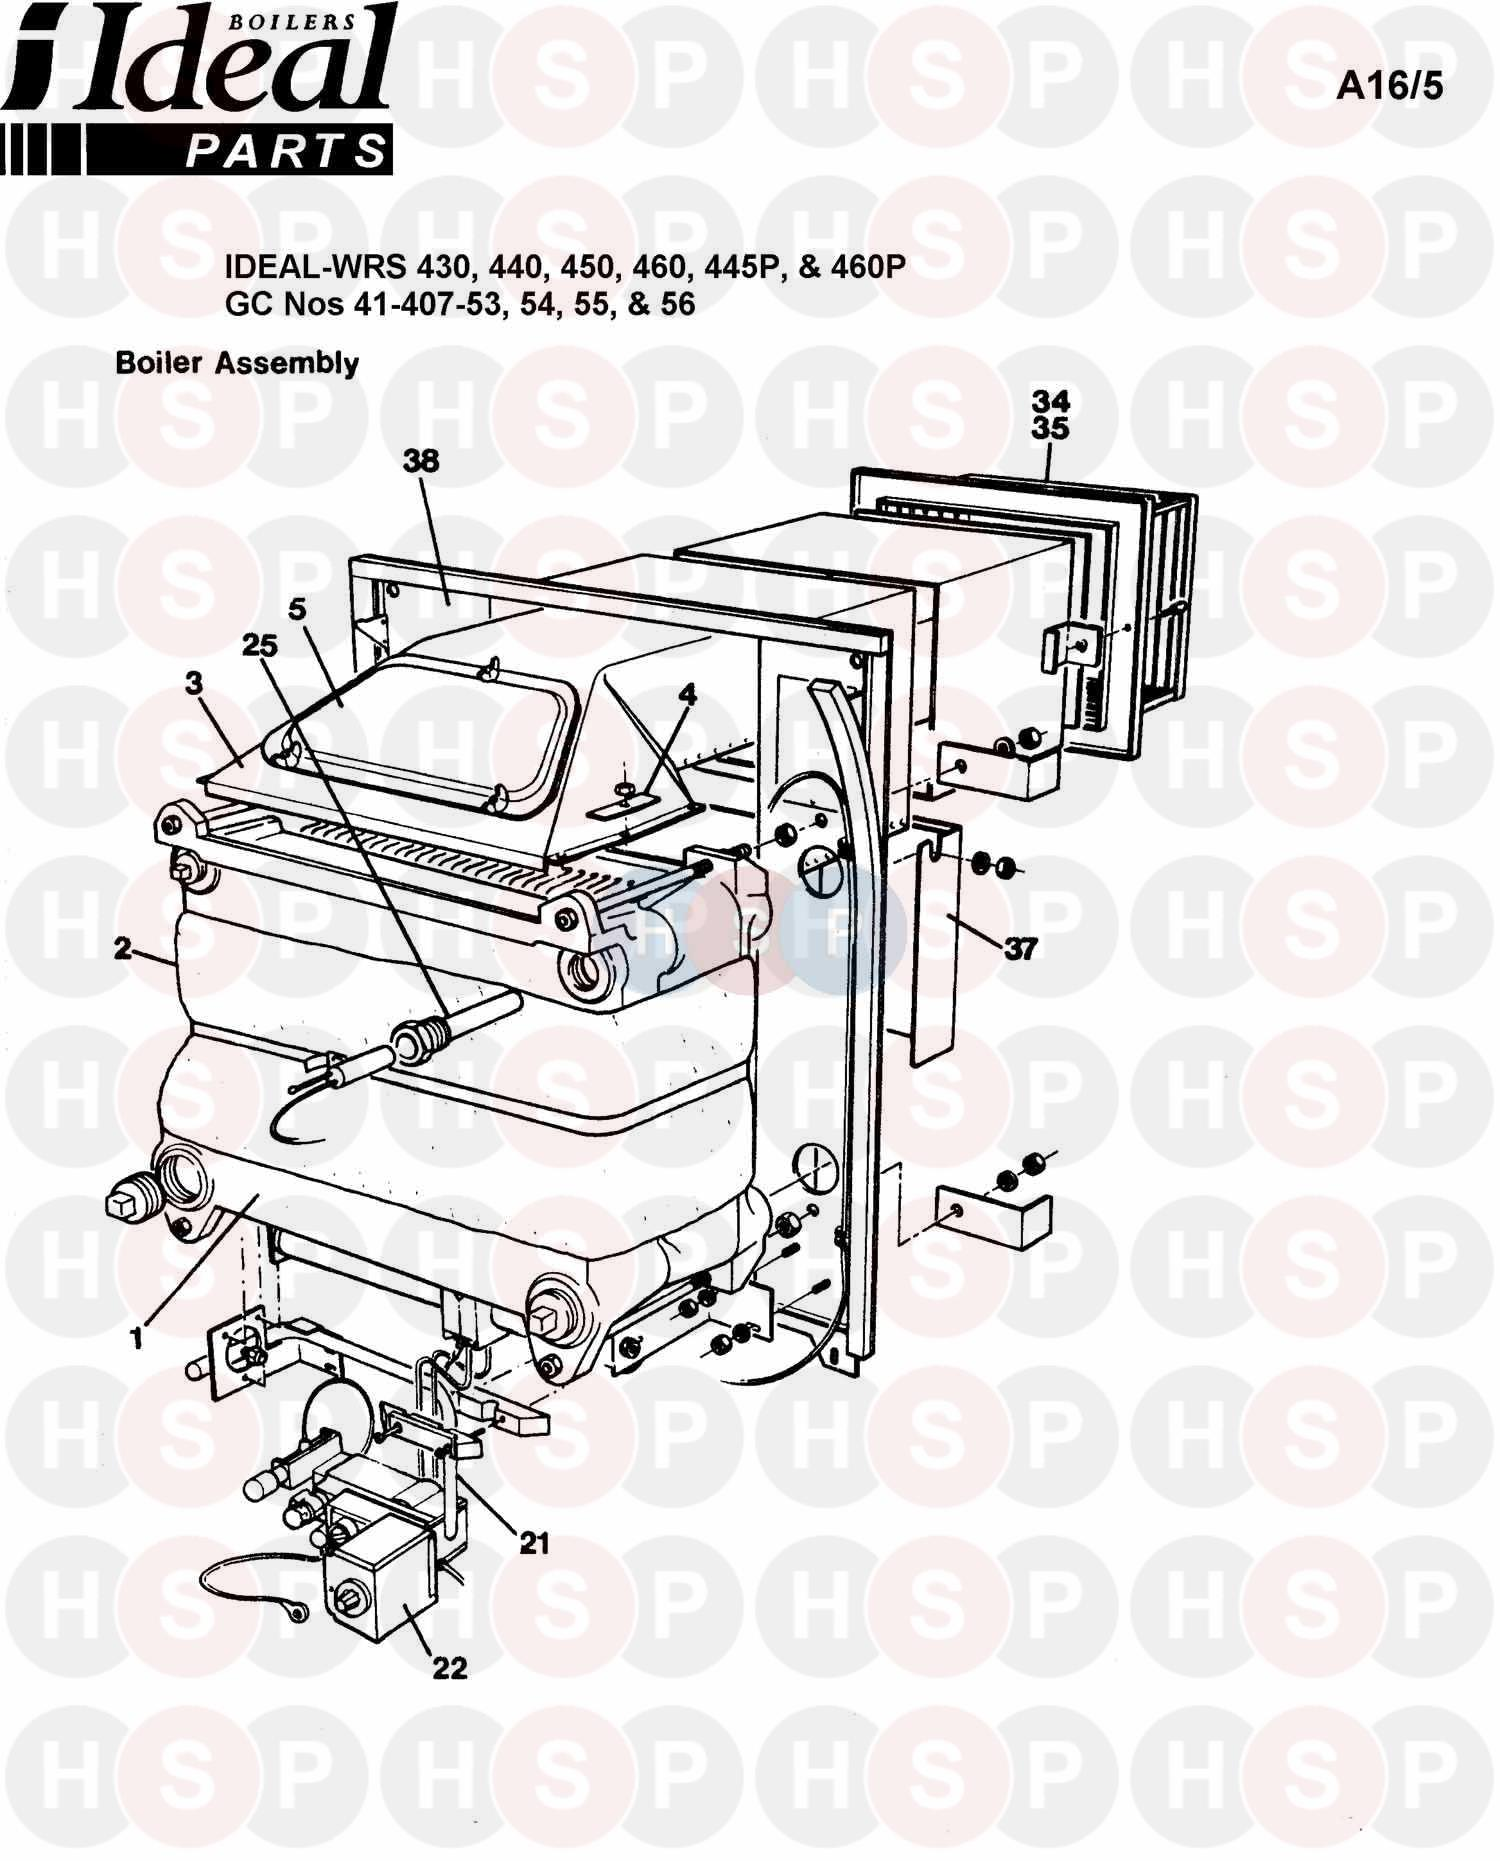 ideal concord wrs 430 appliance diagram  boiler assembly 1